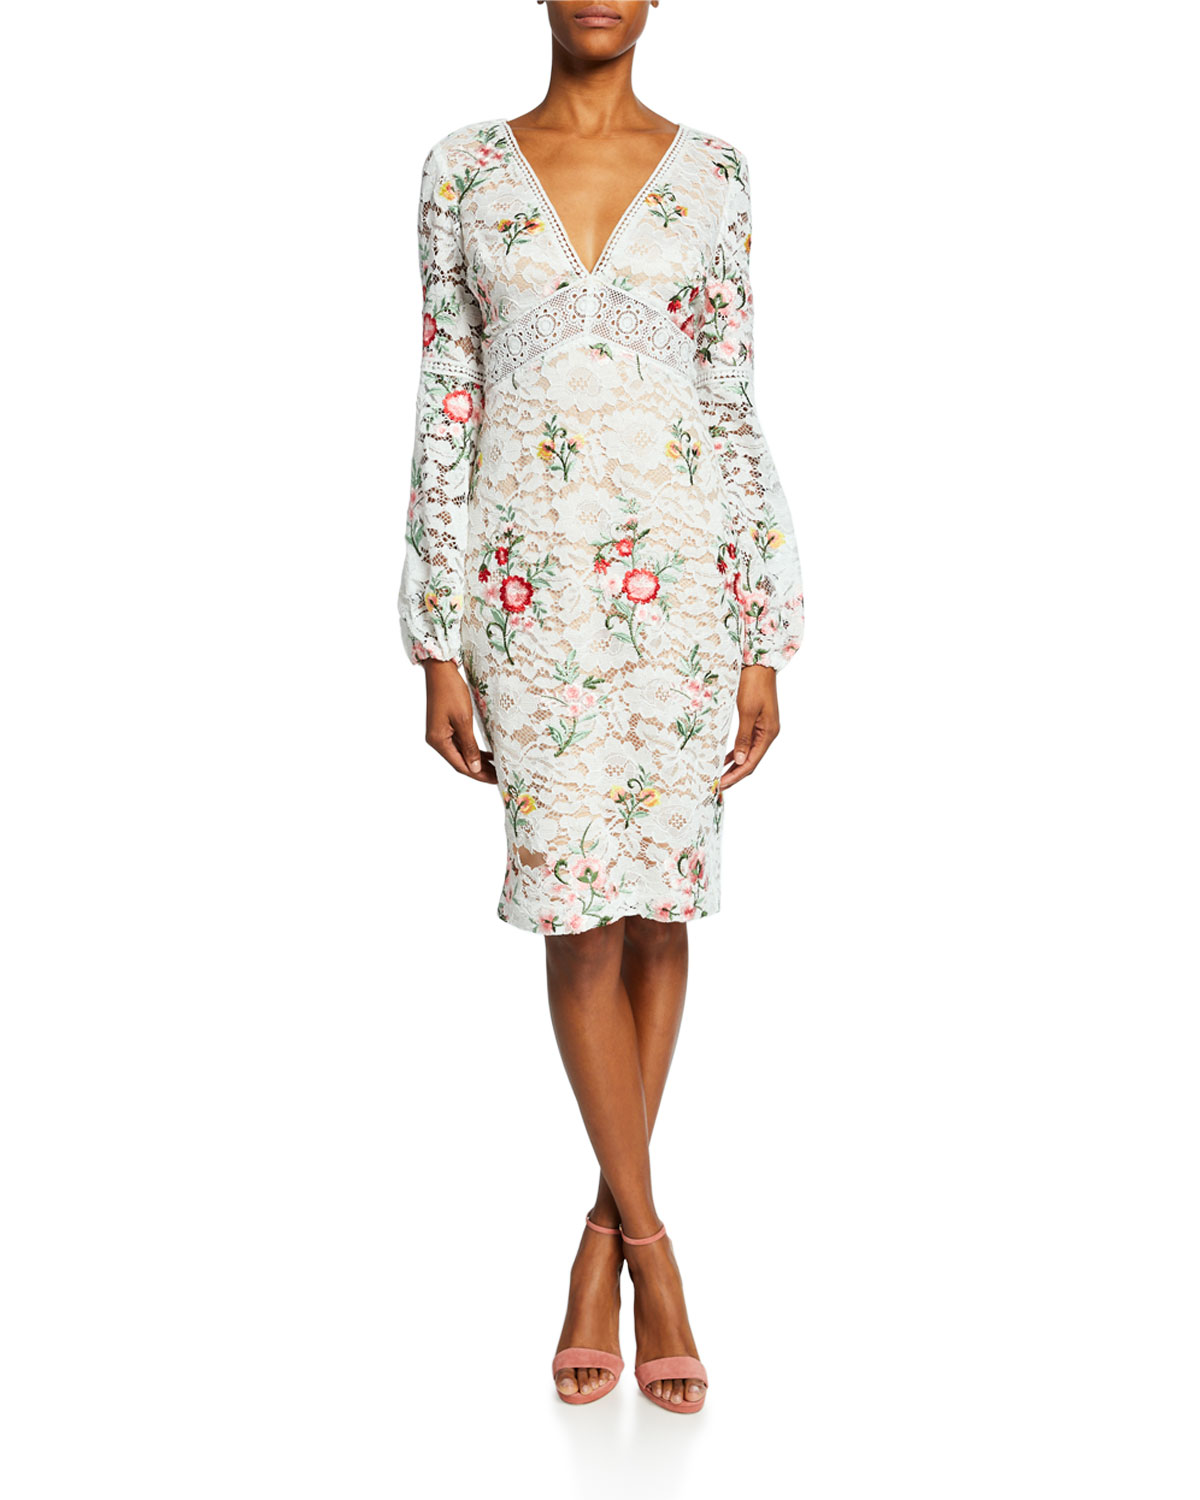 Badgley Mischka Dresses Floral-Print Long-Sleeve Boho Lace Cocktail Dress